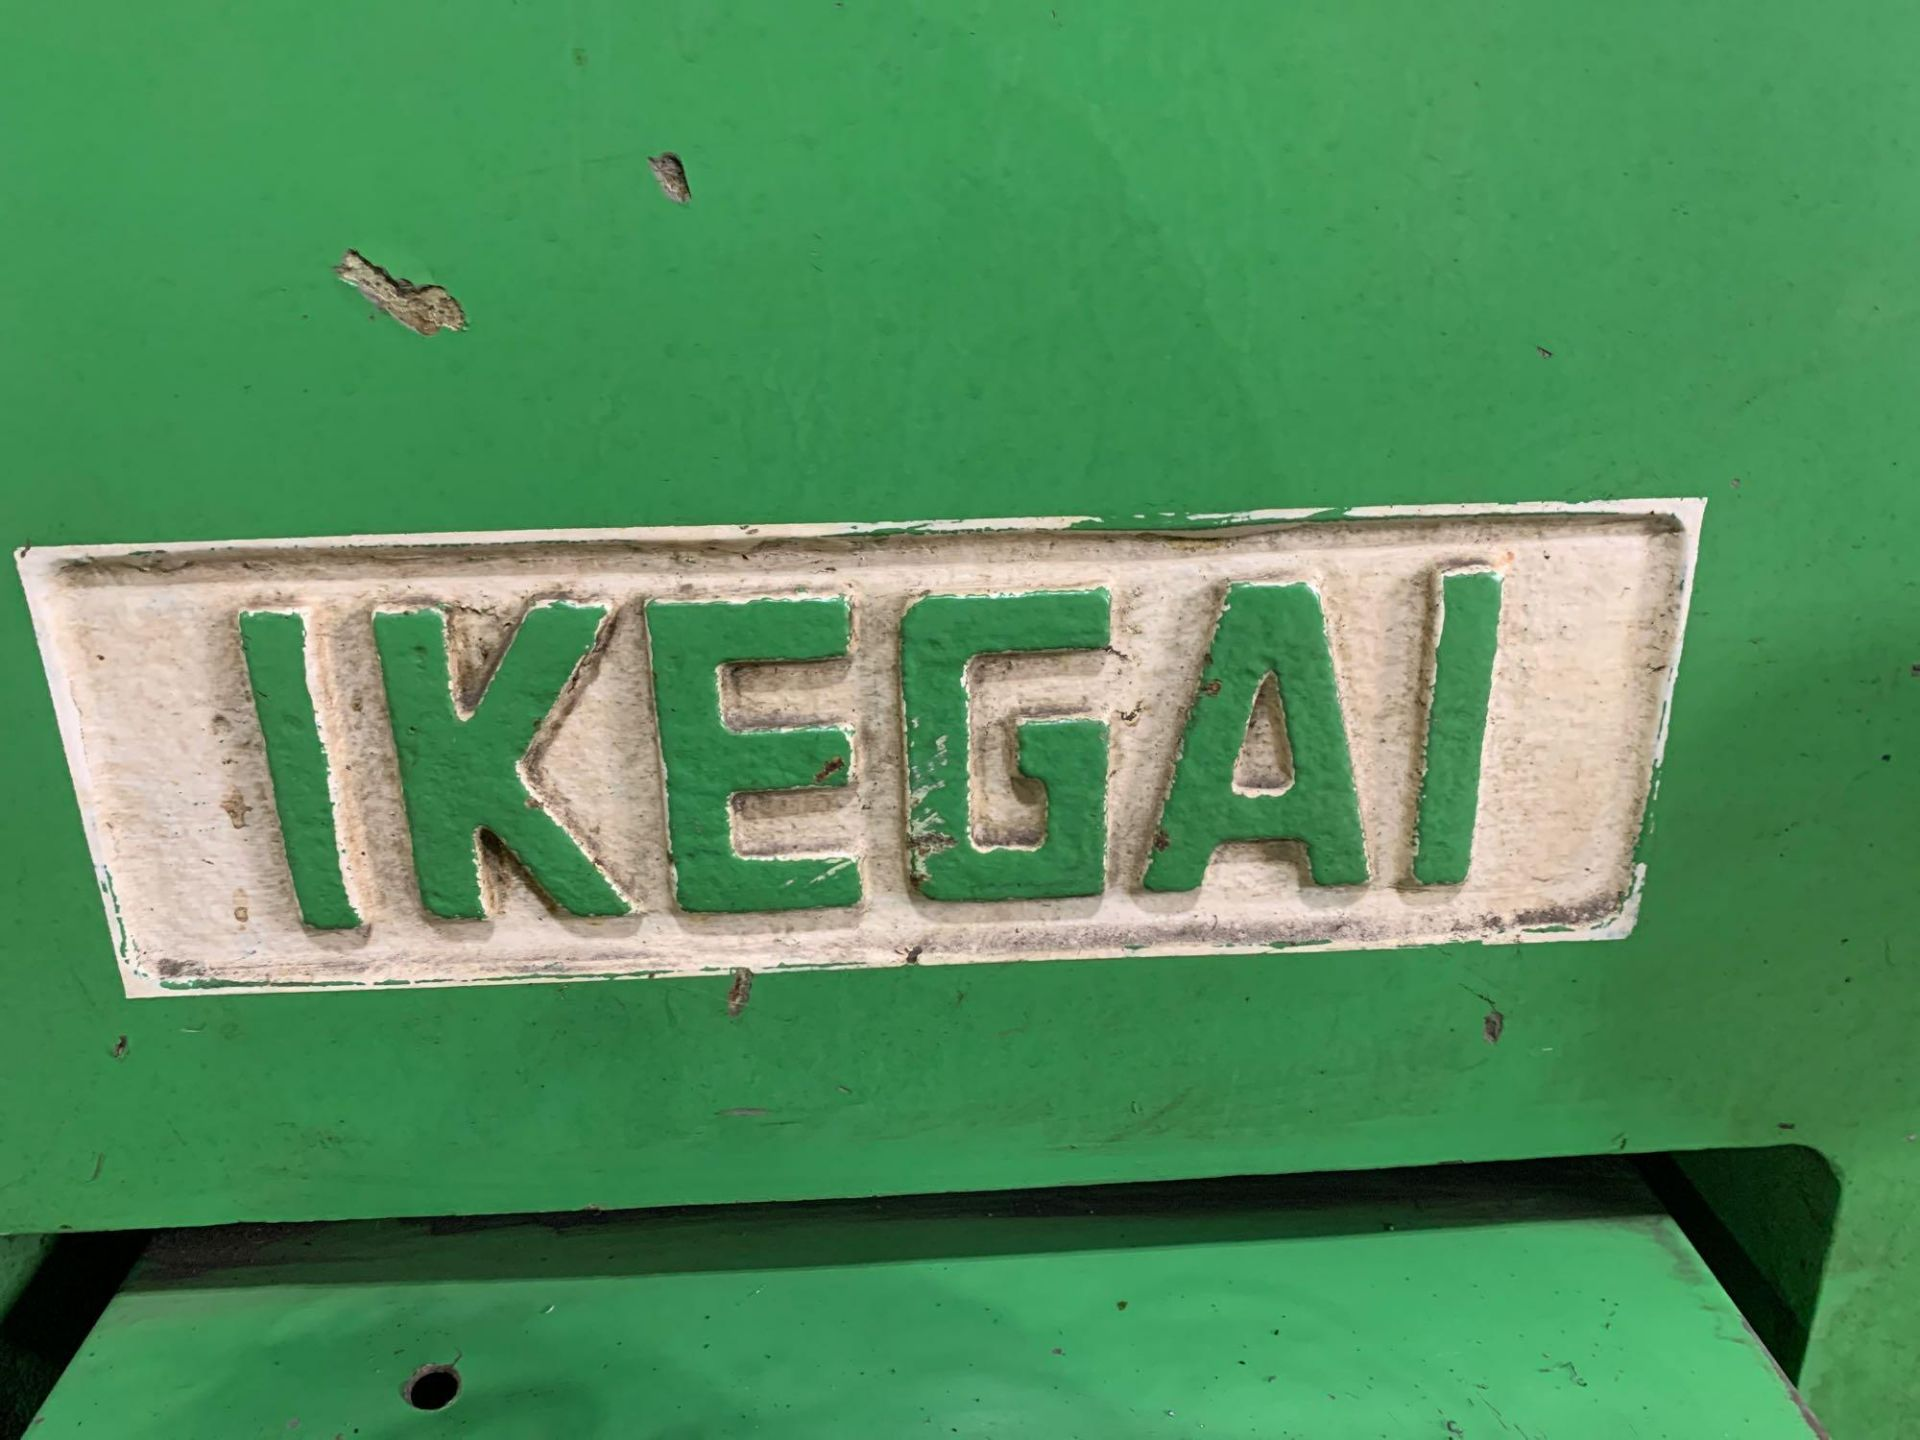 IKEGAI AX-15Z CNC Slant Bed Turning Center Serial Number: 50130V 2-Axis Machine Fanuc 10T Control 12 - Image 15 of 18